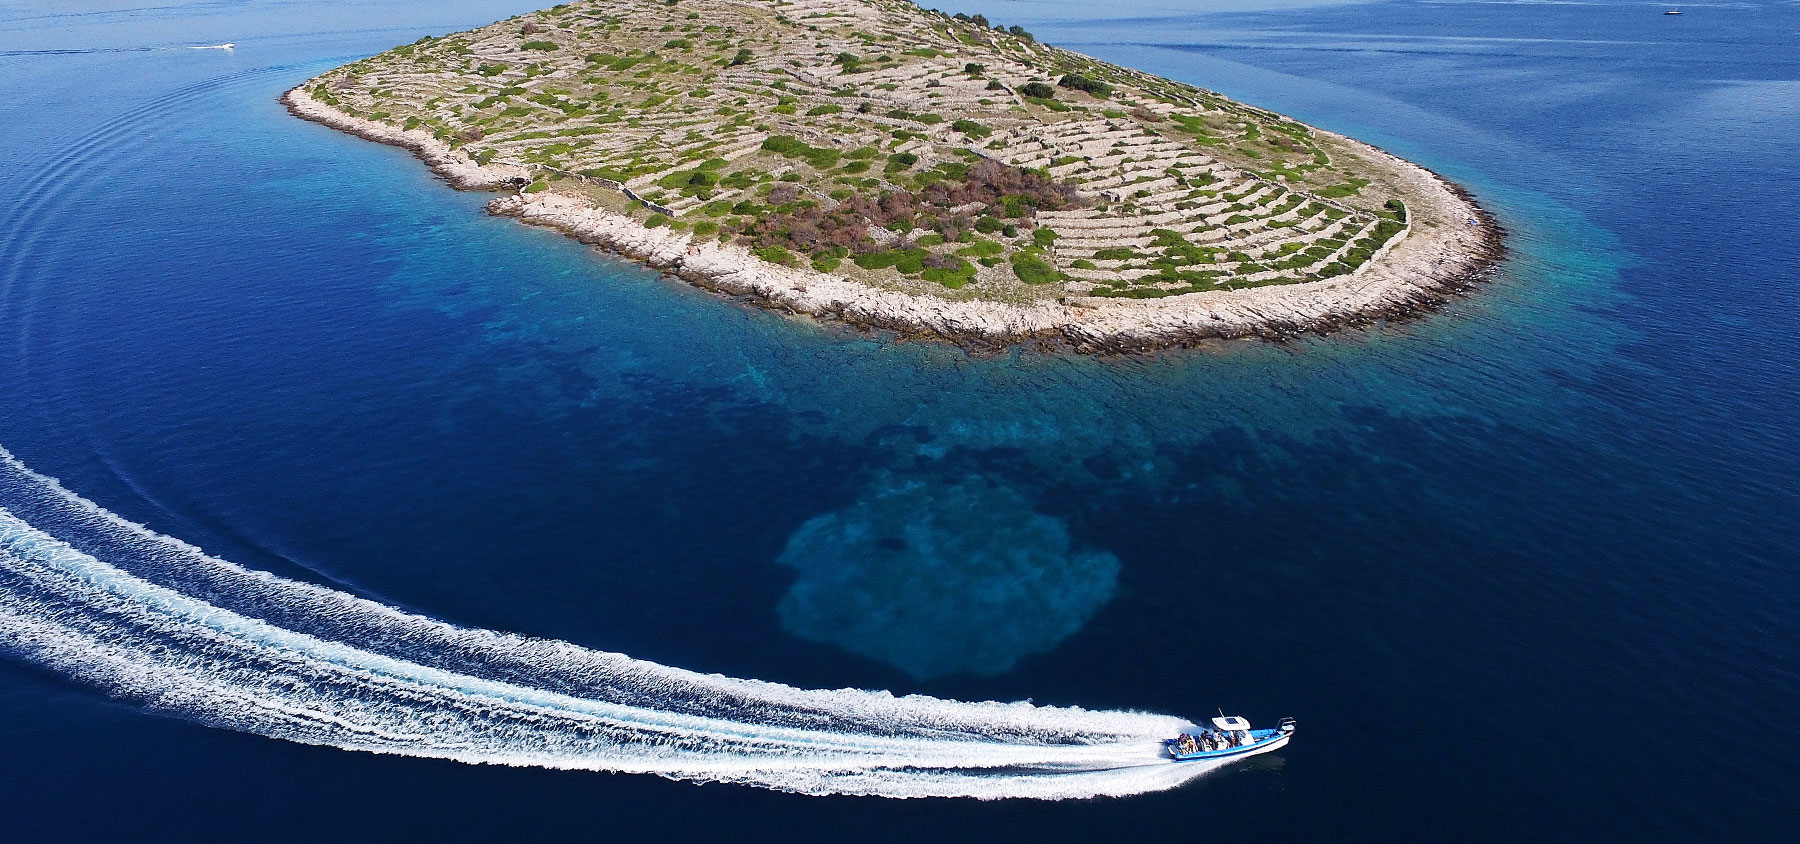 Archipelago Tours Croatia Sibenik boat tour - boat photo passing Bavljenac island from the air